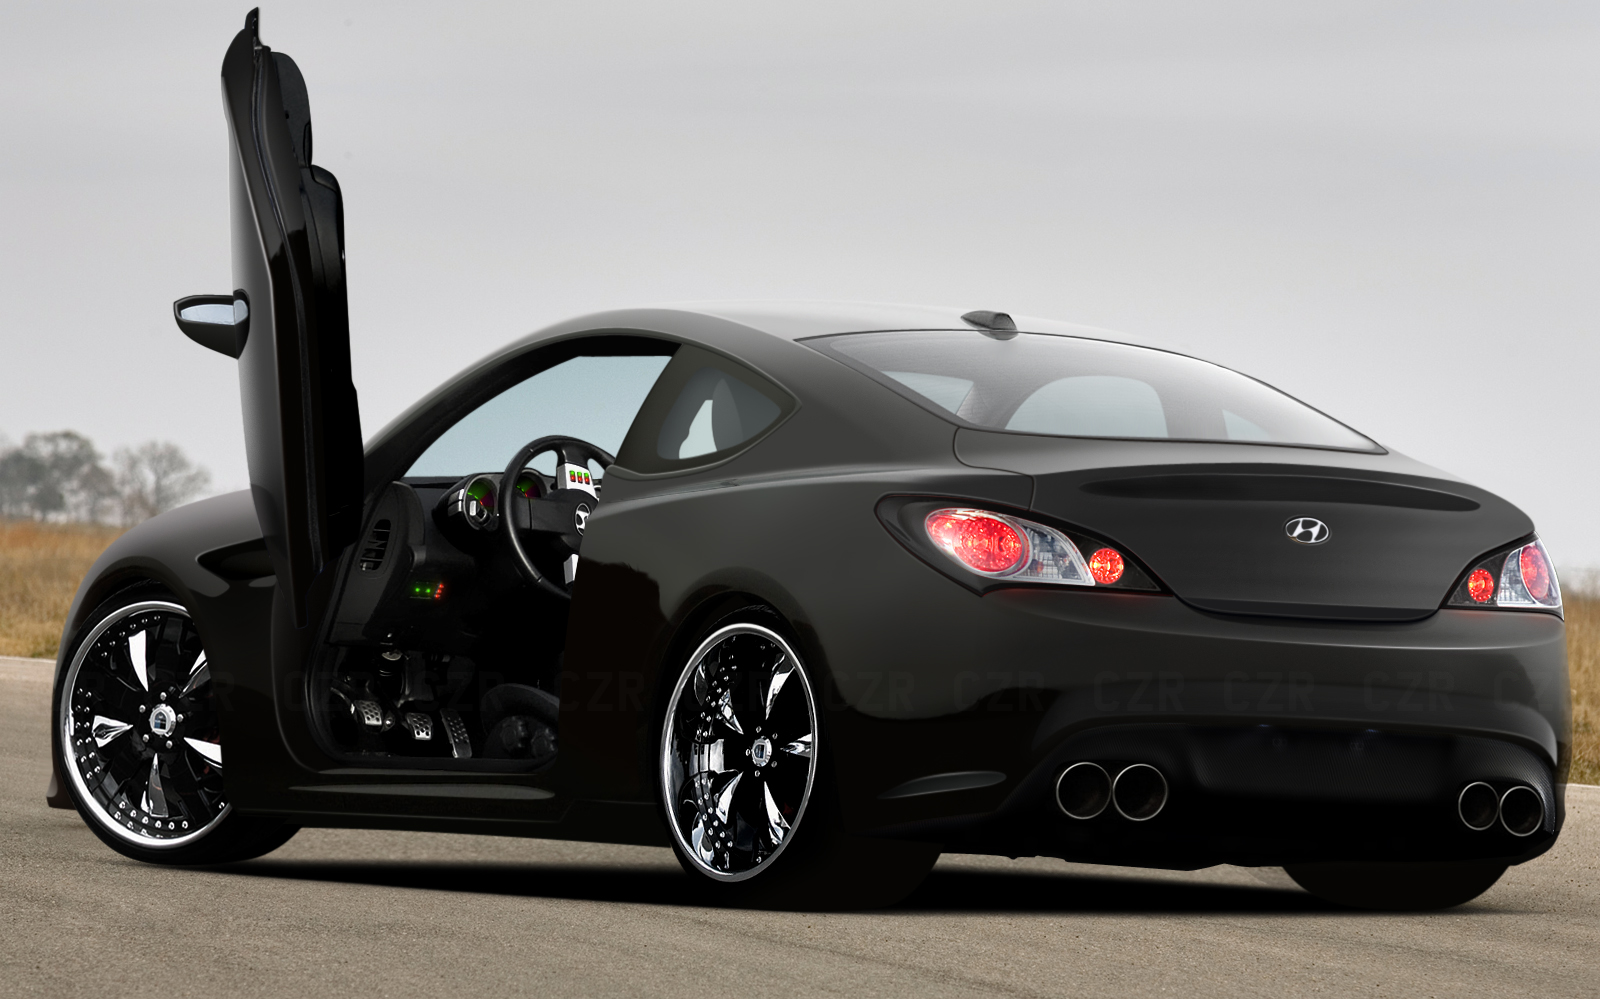 2013 Hyundai Genesis Coupe Review Price And Specs | Black Models ...